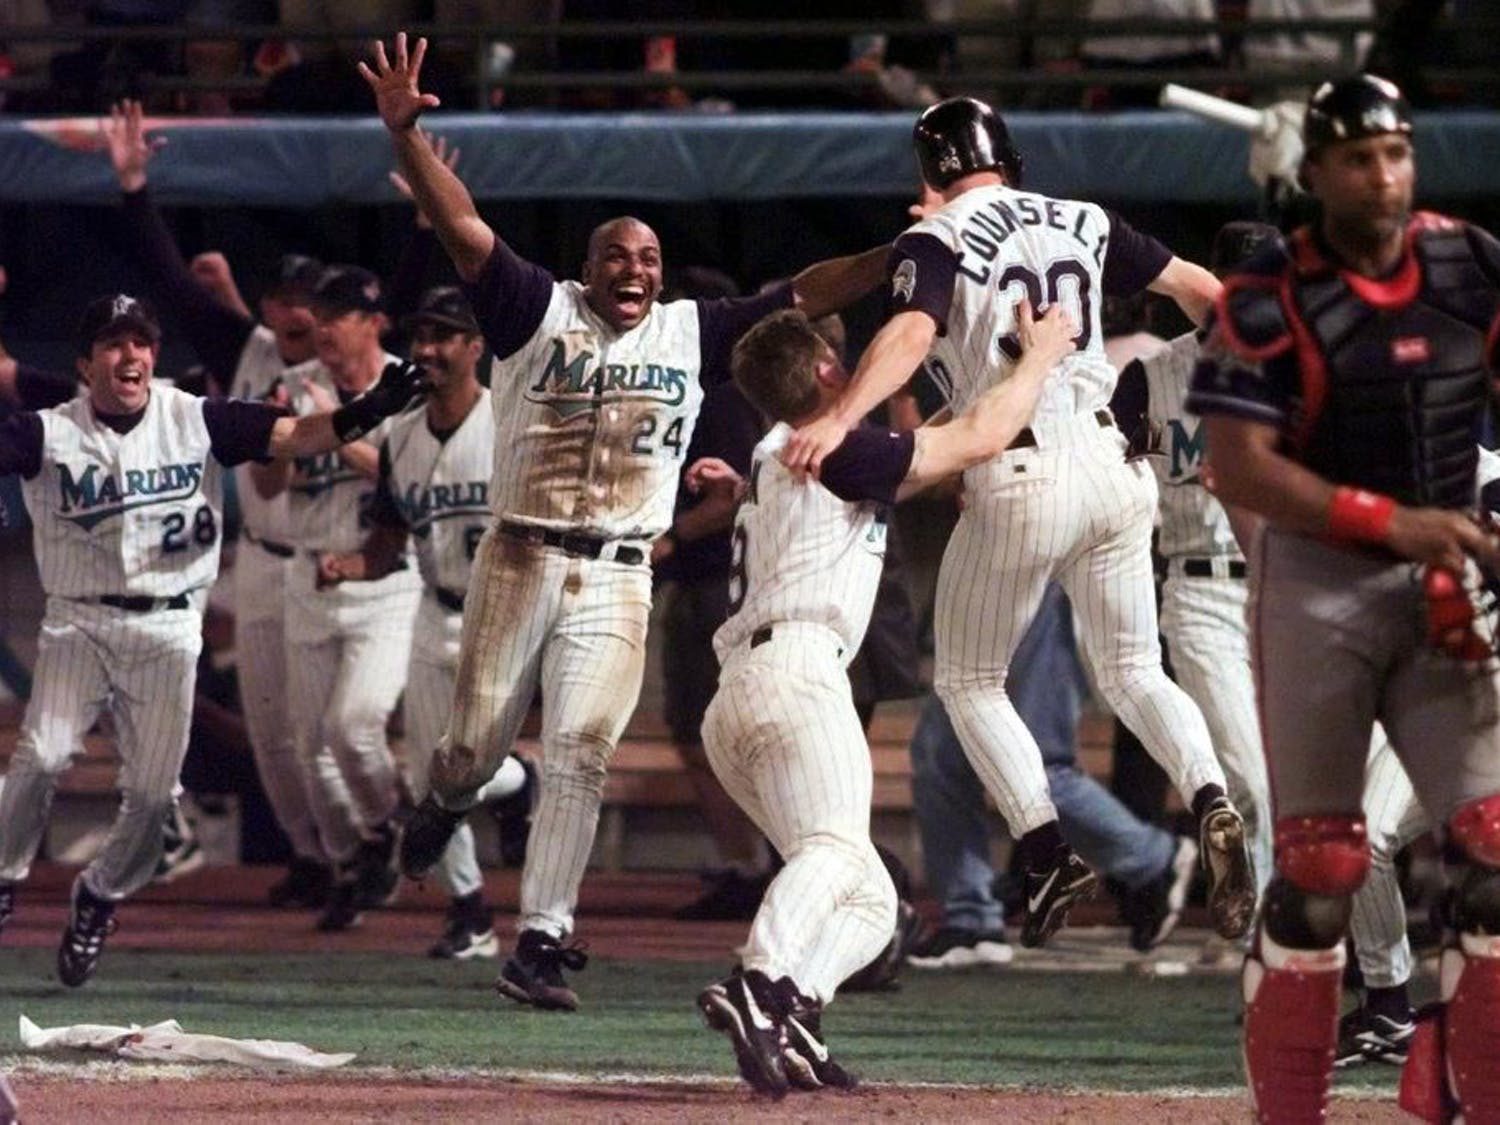 The then-Florida Marlins won the 2003 World Series over Cleveland.